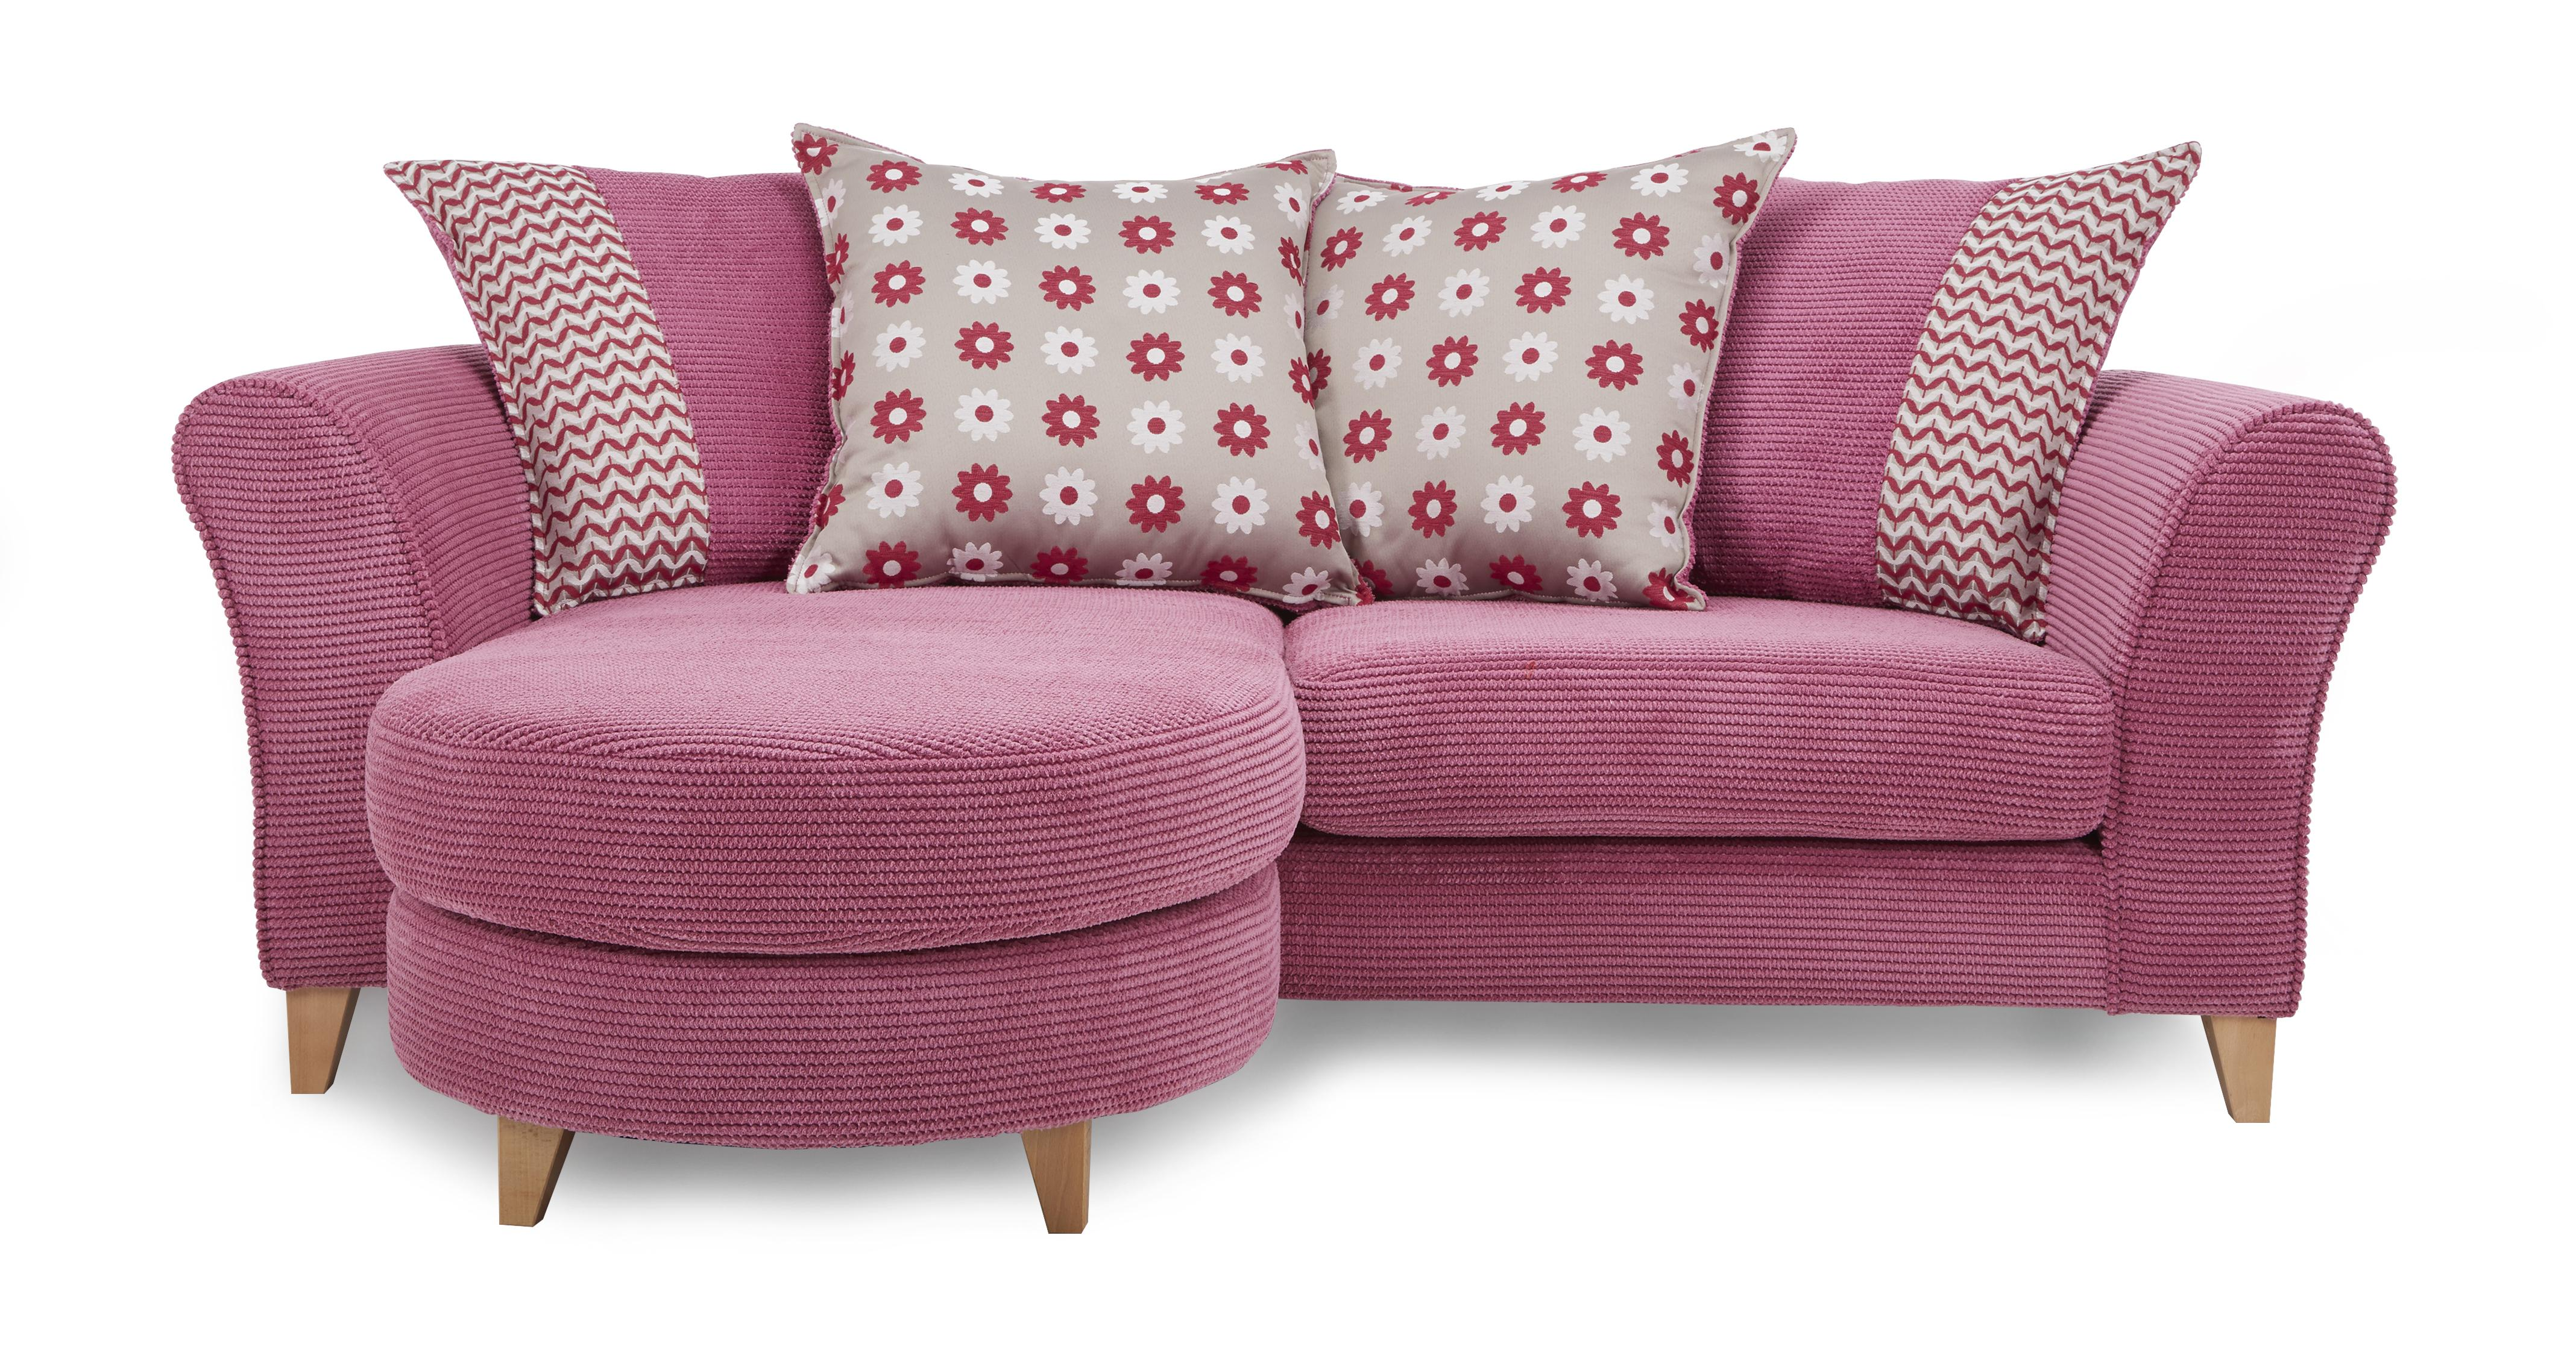 pink sofa furniture ashley chaise ottoman that turns into bed convert to